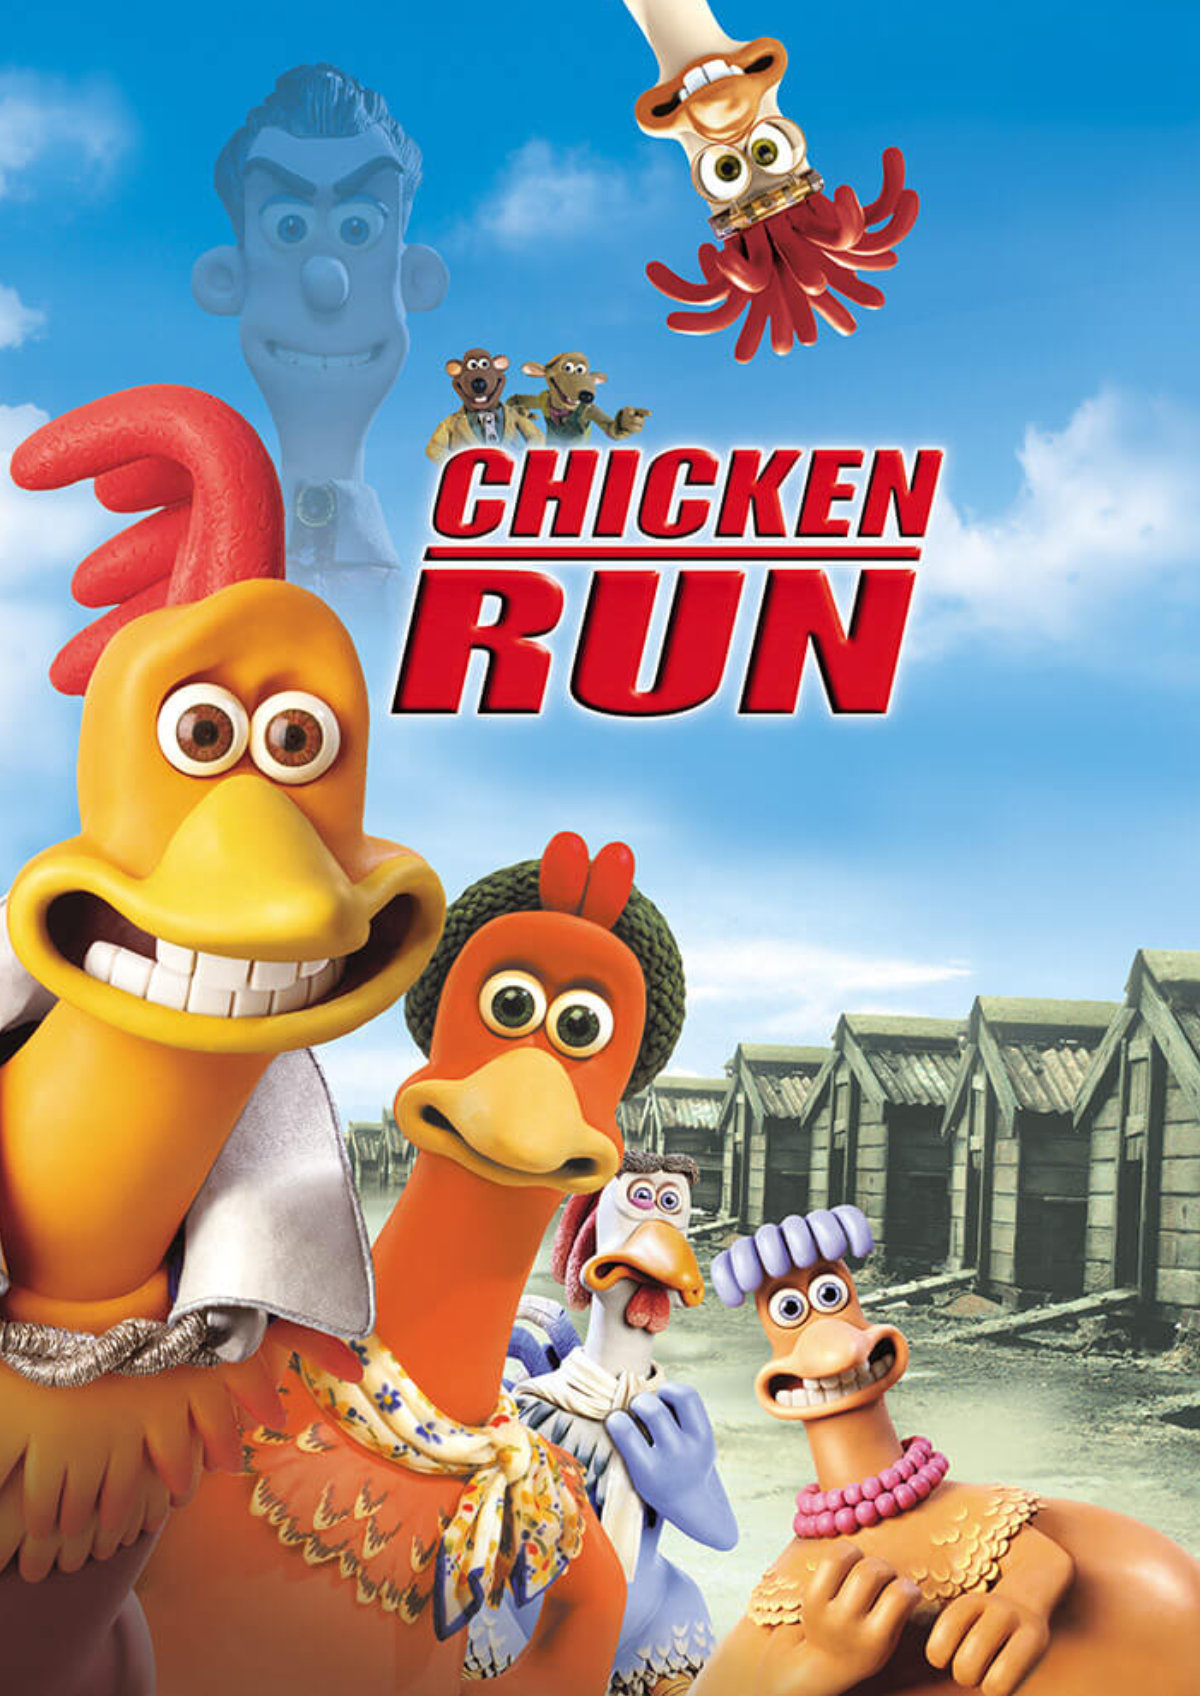 'Chicken Run' movie poster